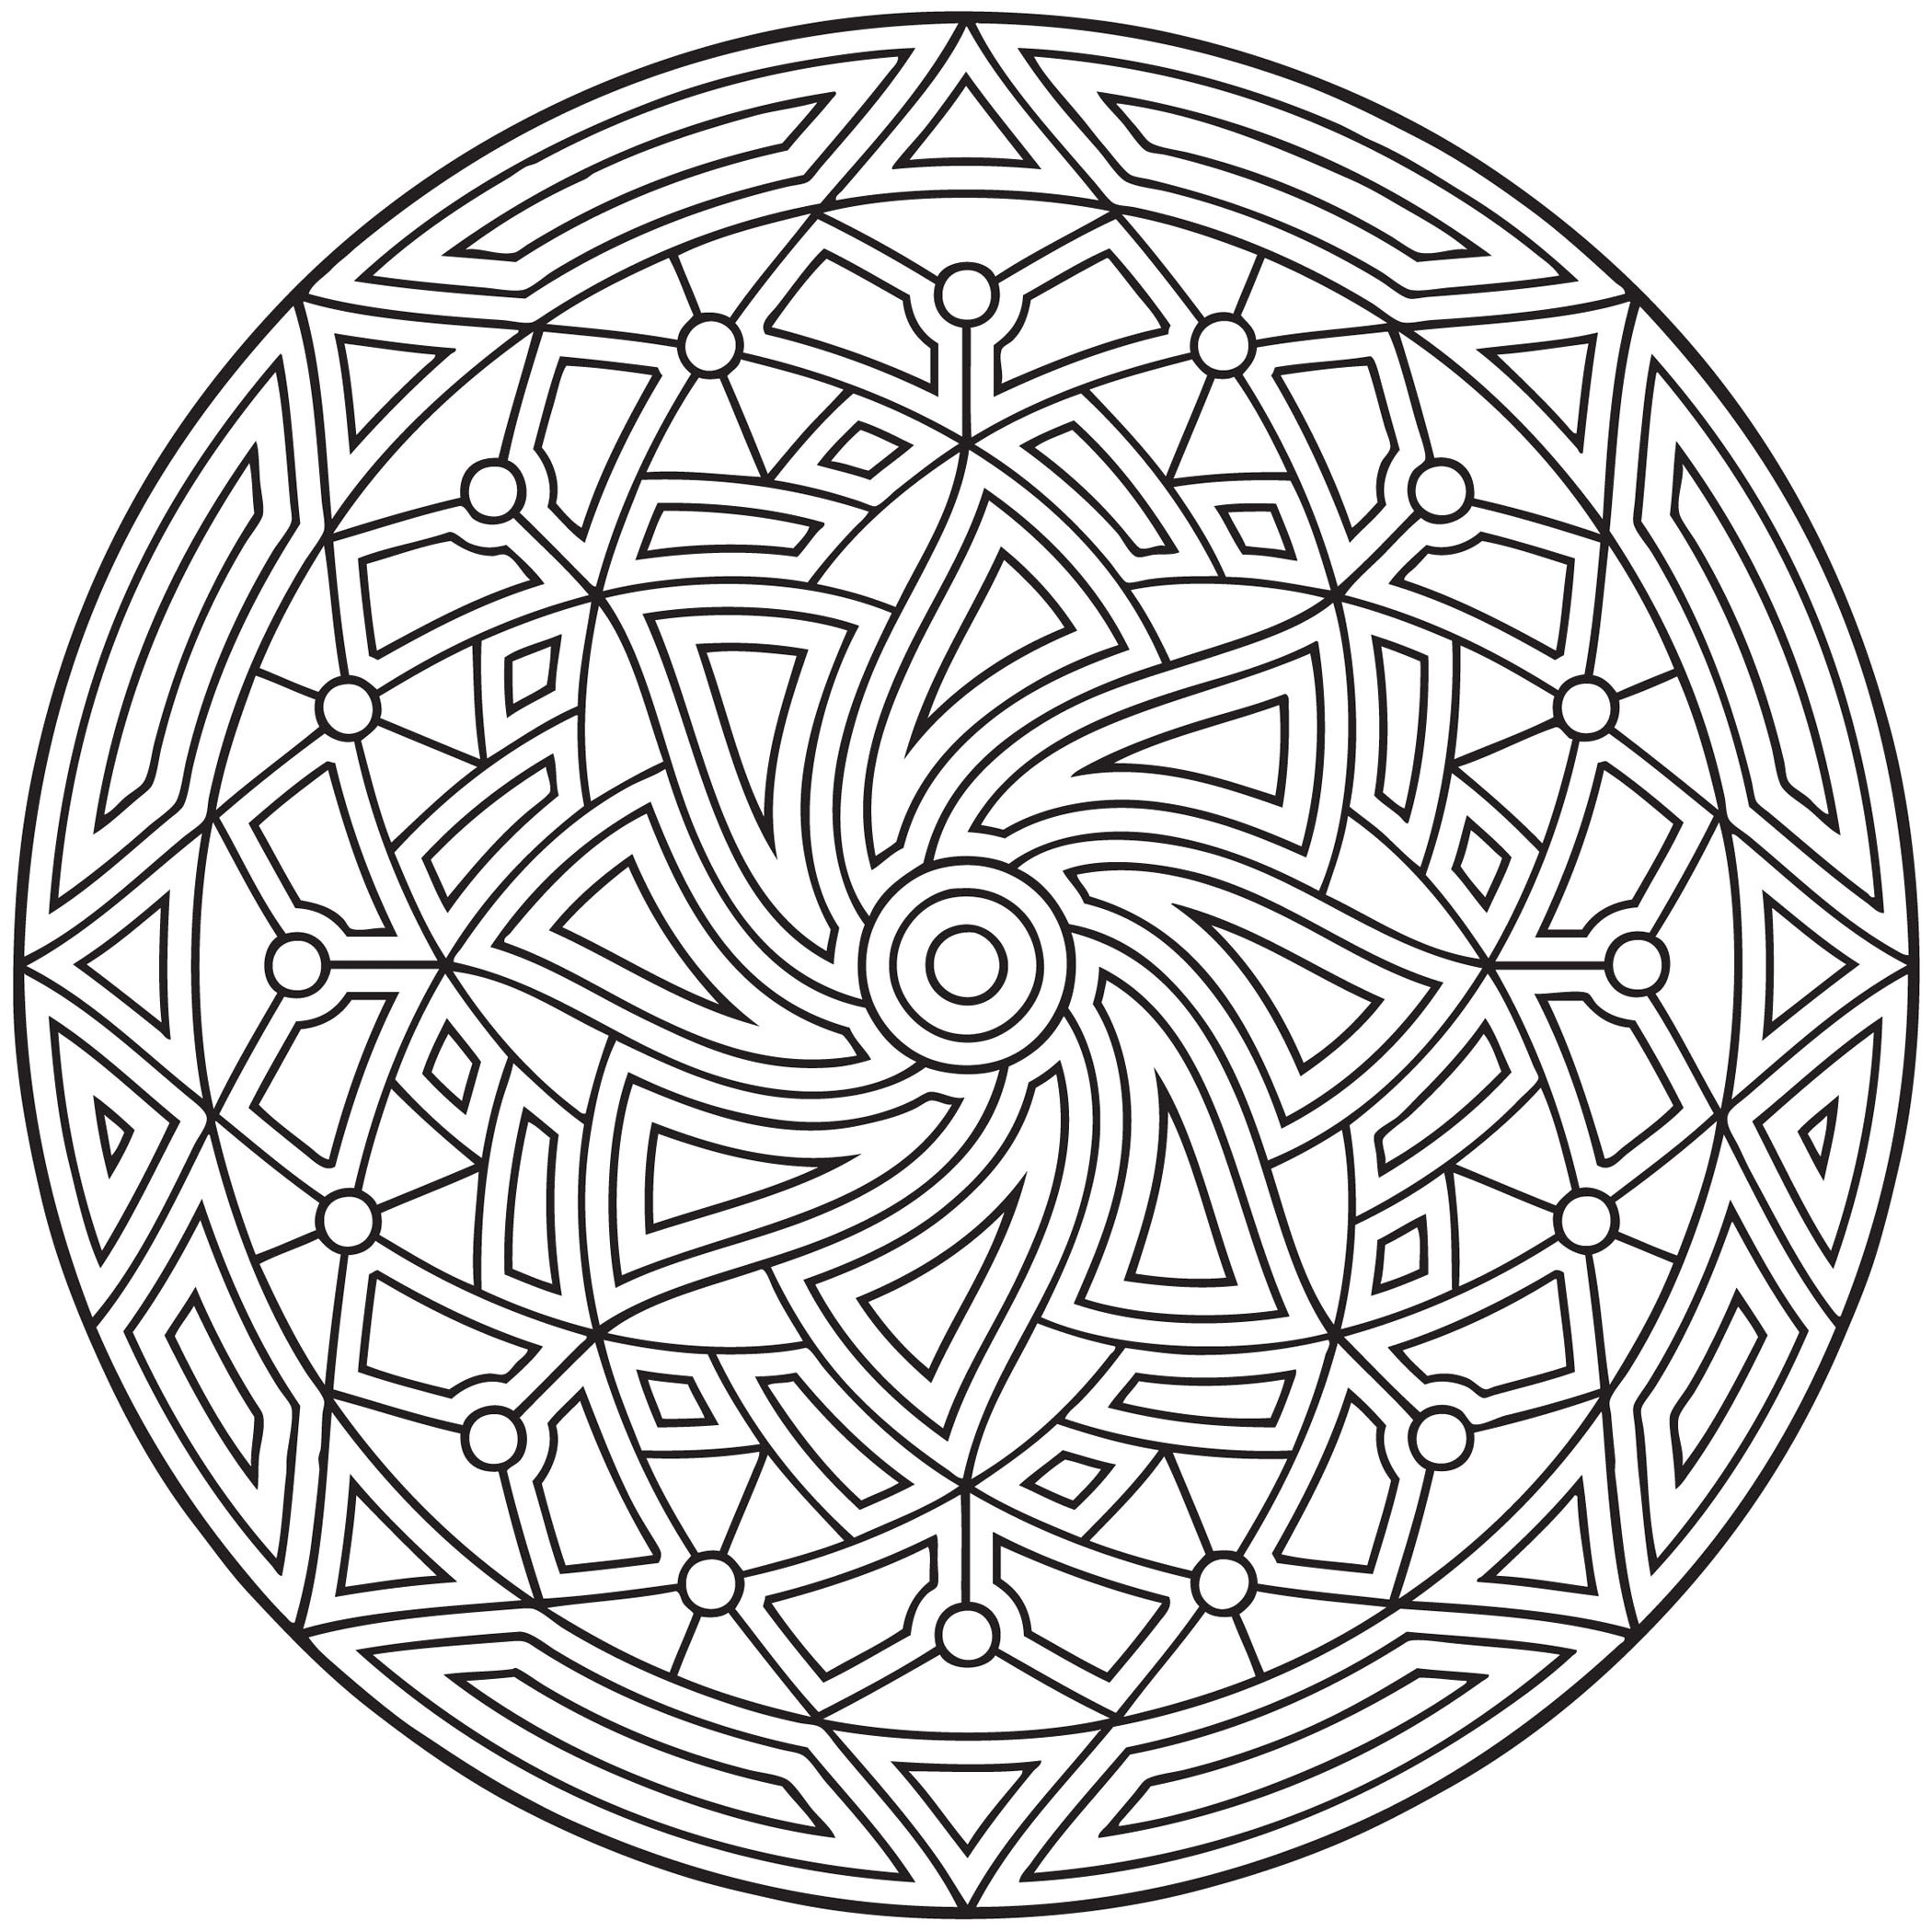 pattern coloring pages to print - photo#7